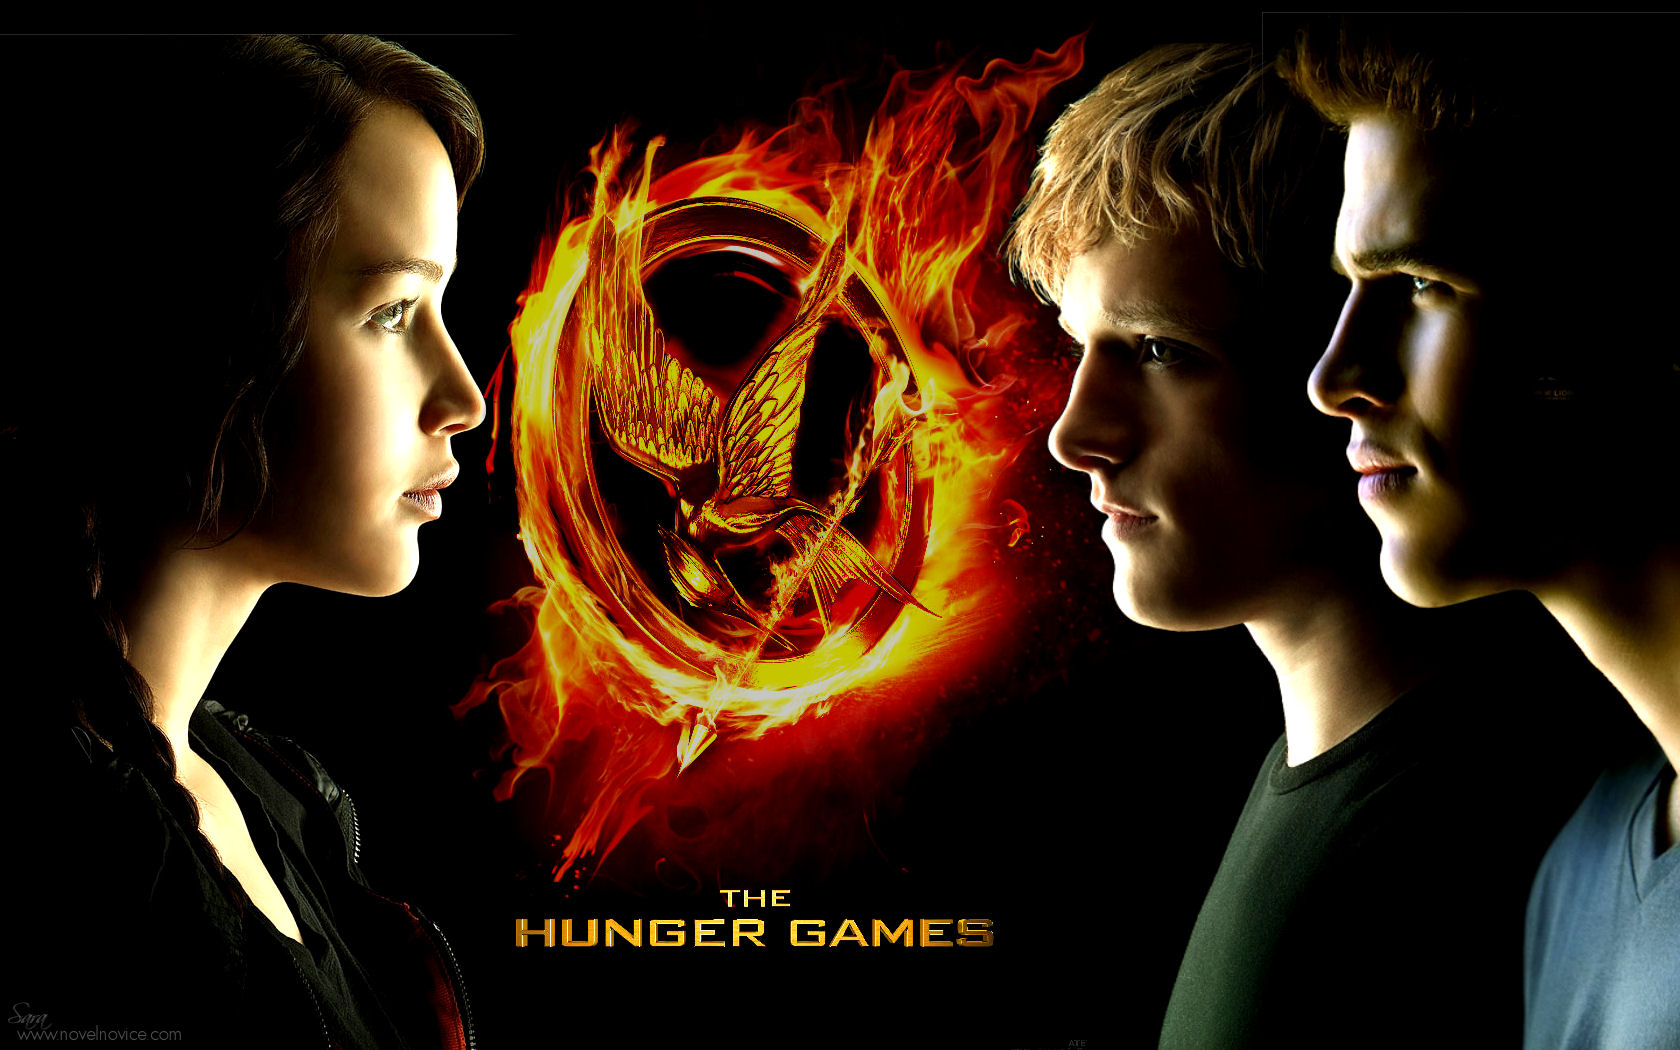 Reblog // 5 Lessons in Human Goodness from The Hunger Games | Invisible Children